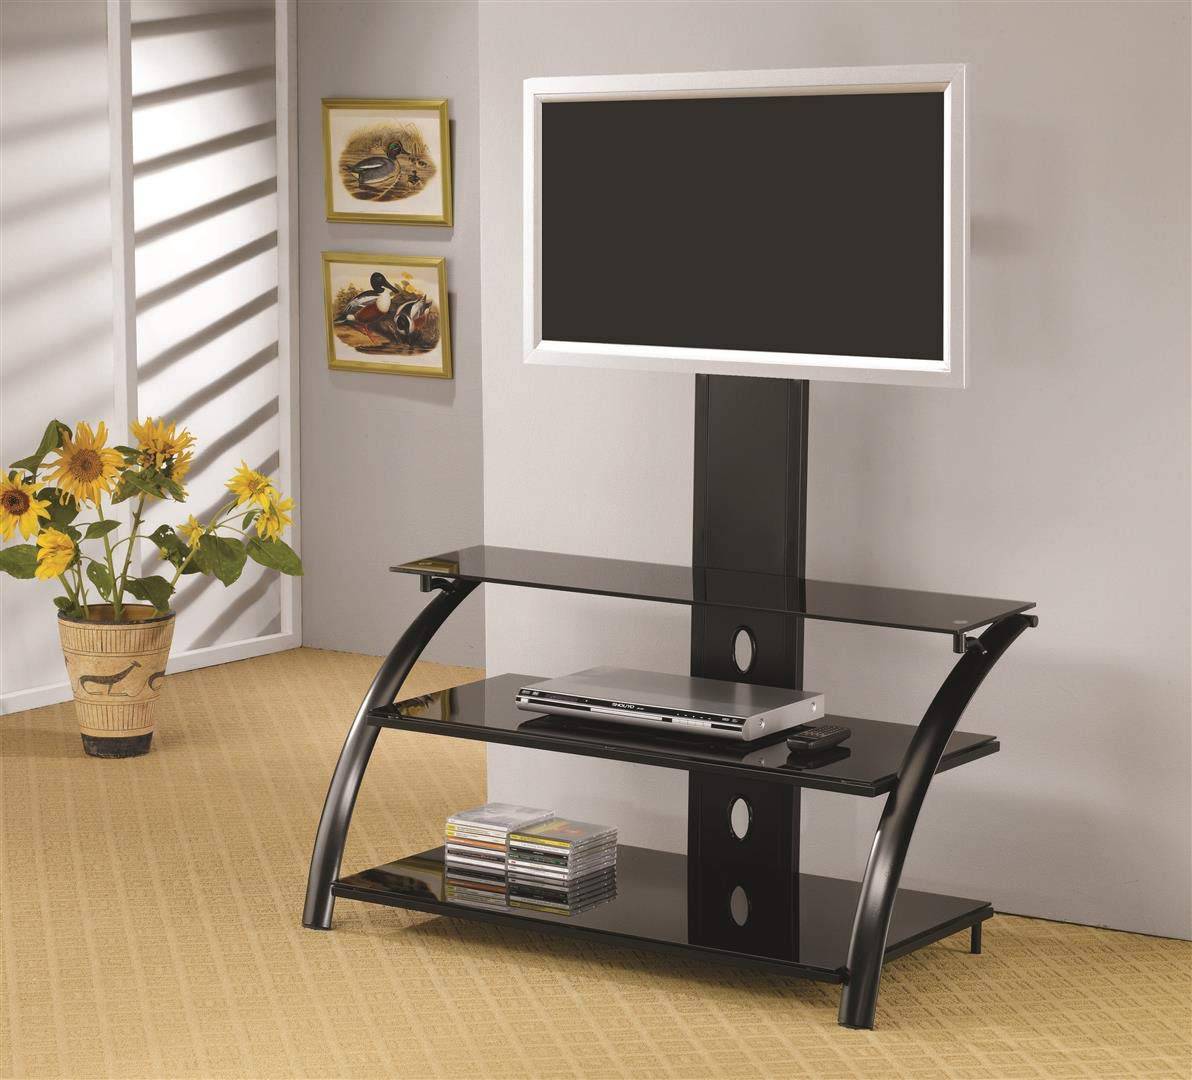 Coaster Home Furnishings TV Console with Bracket Black